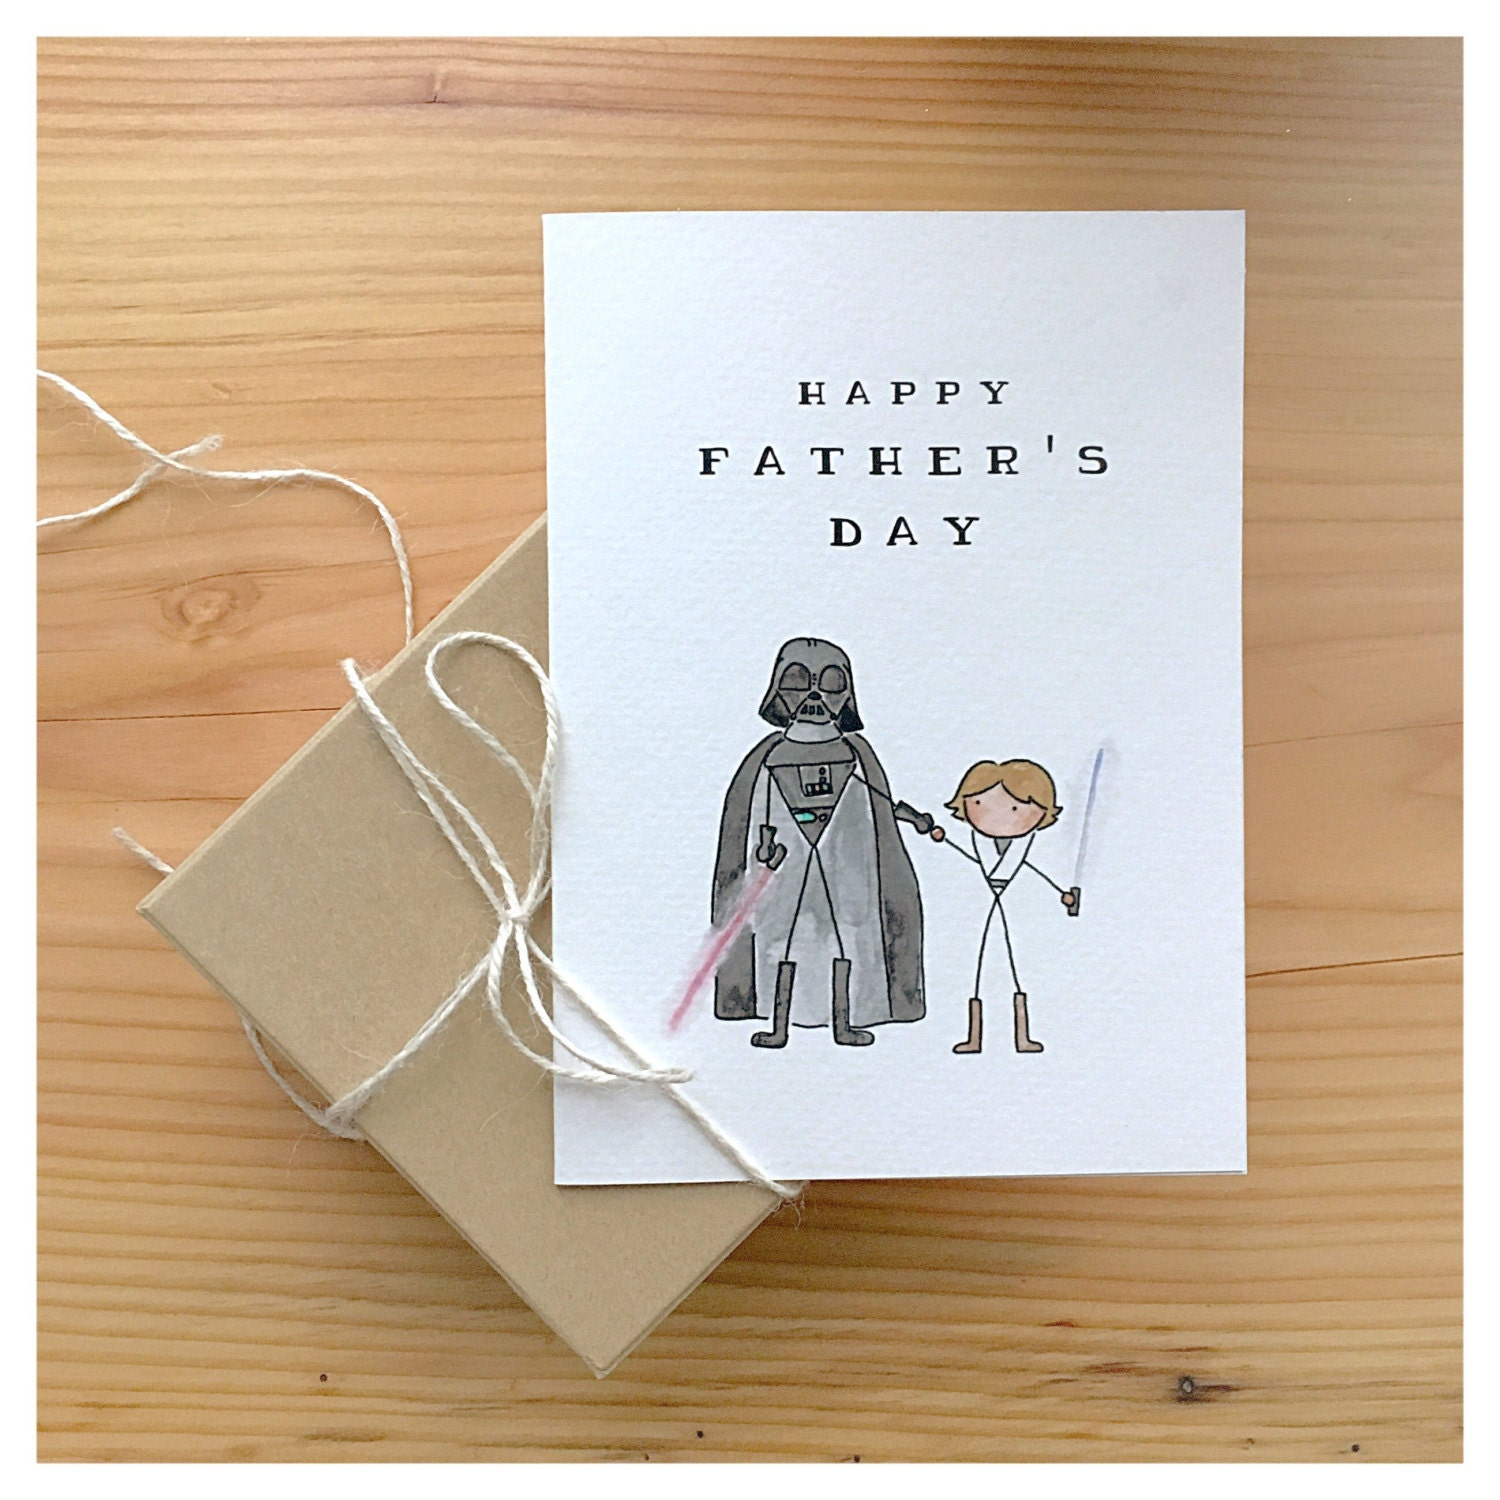 Starwars Fathers Day Card Star Wars Card Darth Vader Luke